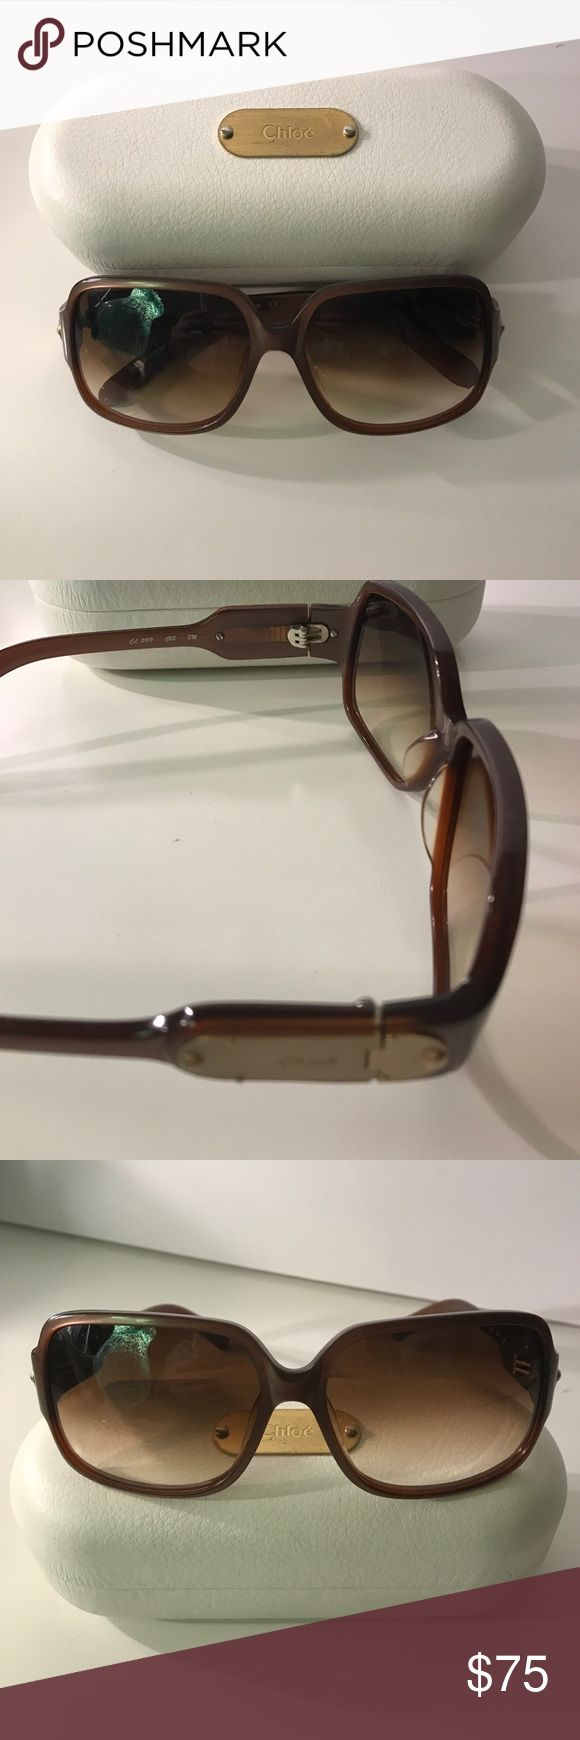 Brown Chloe Sunglasses 😎 Chloe brown sunglasses. Authentic. Comes with a case and lens cleaner. Square-ish lens. Shows some wear on the side label as seen in pictures. Chloe Accessories Sunglasses